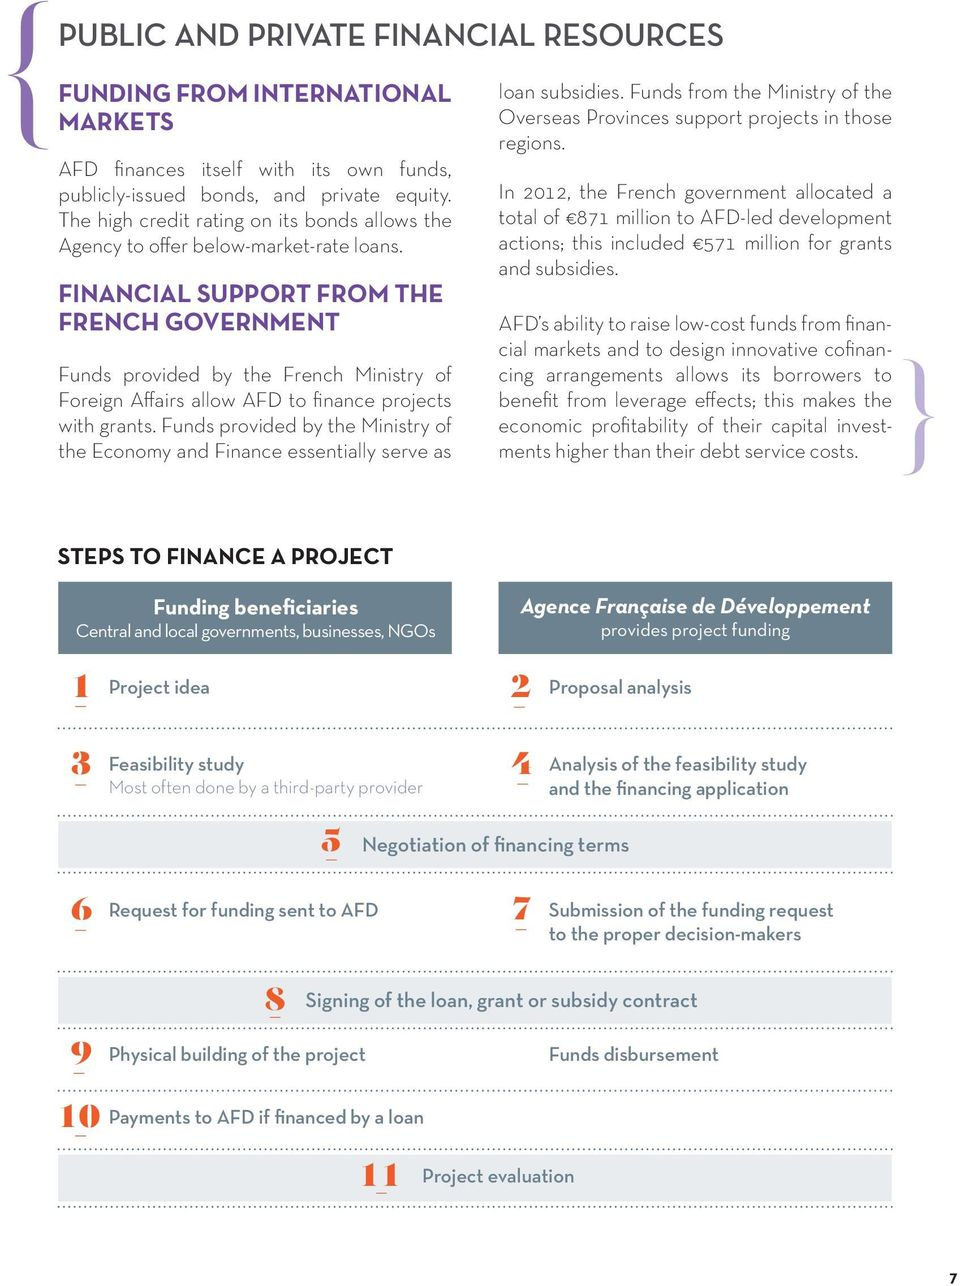 FINANCIAL SUPPORT FROM THE FRENCH GOVERNMENT Funds provided by the French Ministry of Foreign Affairs allow AFD to finance projects with grants.